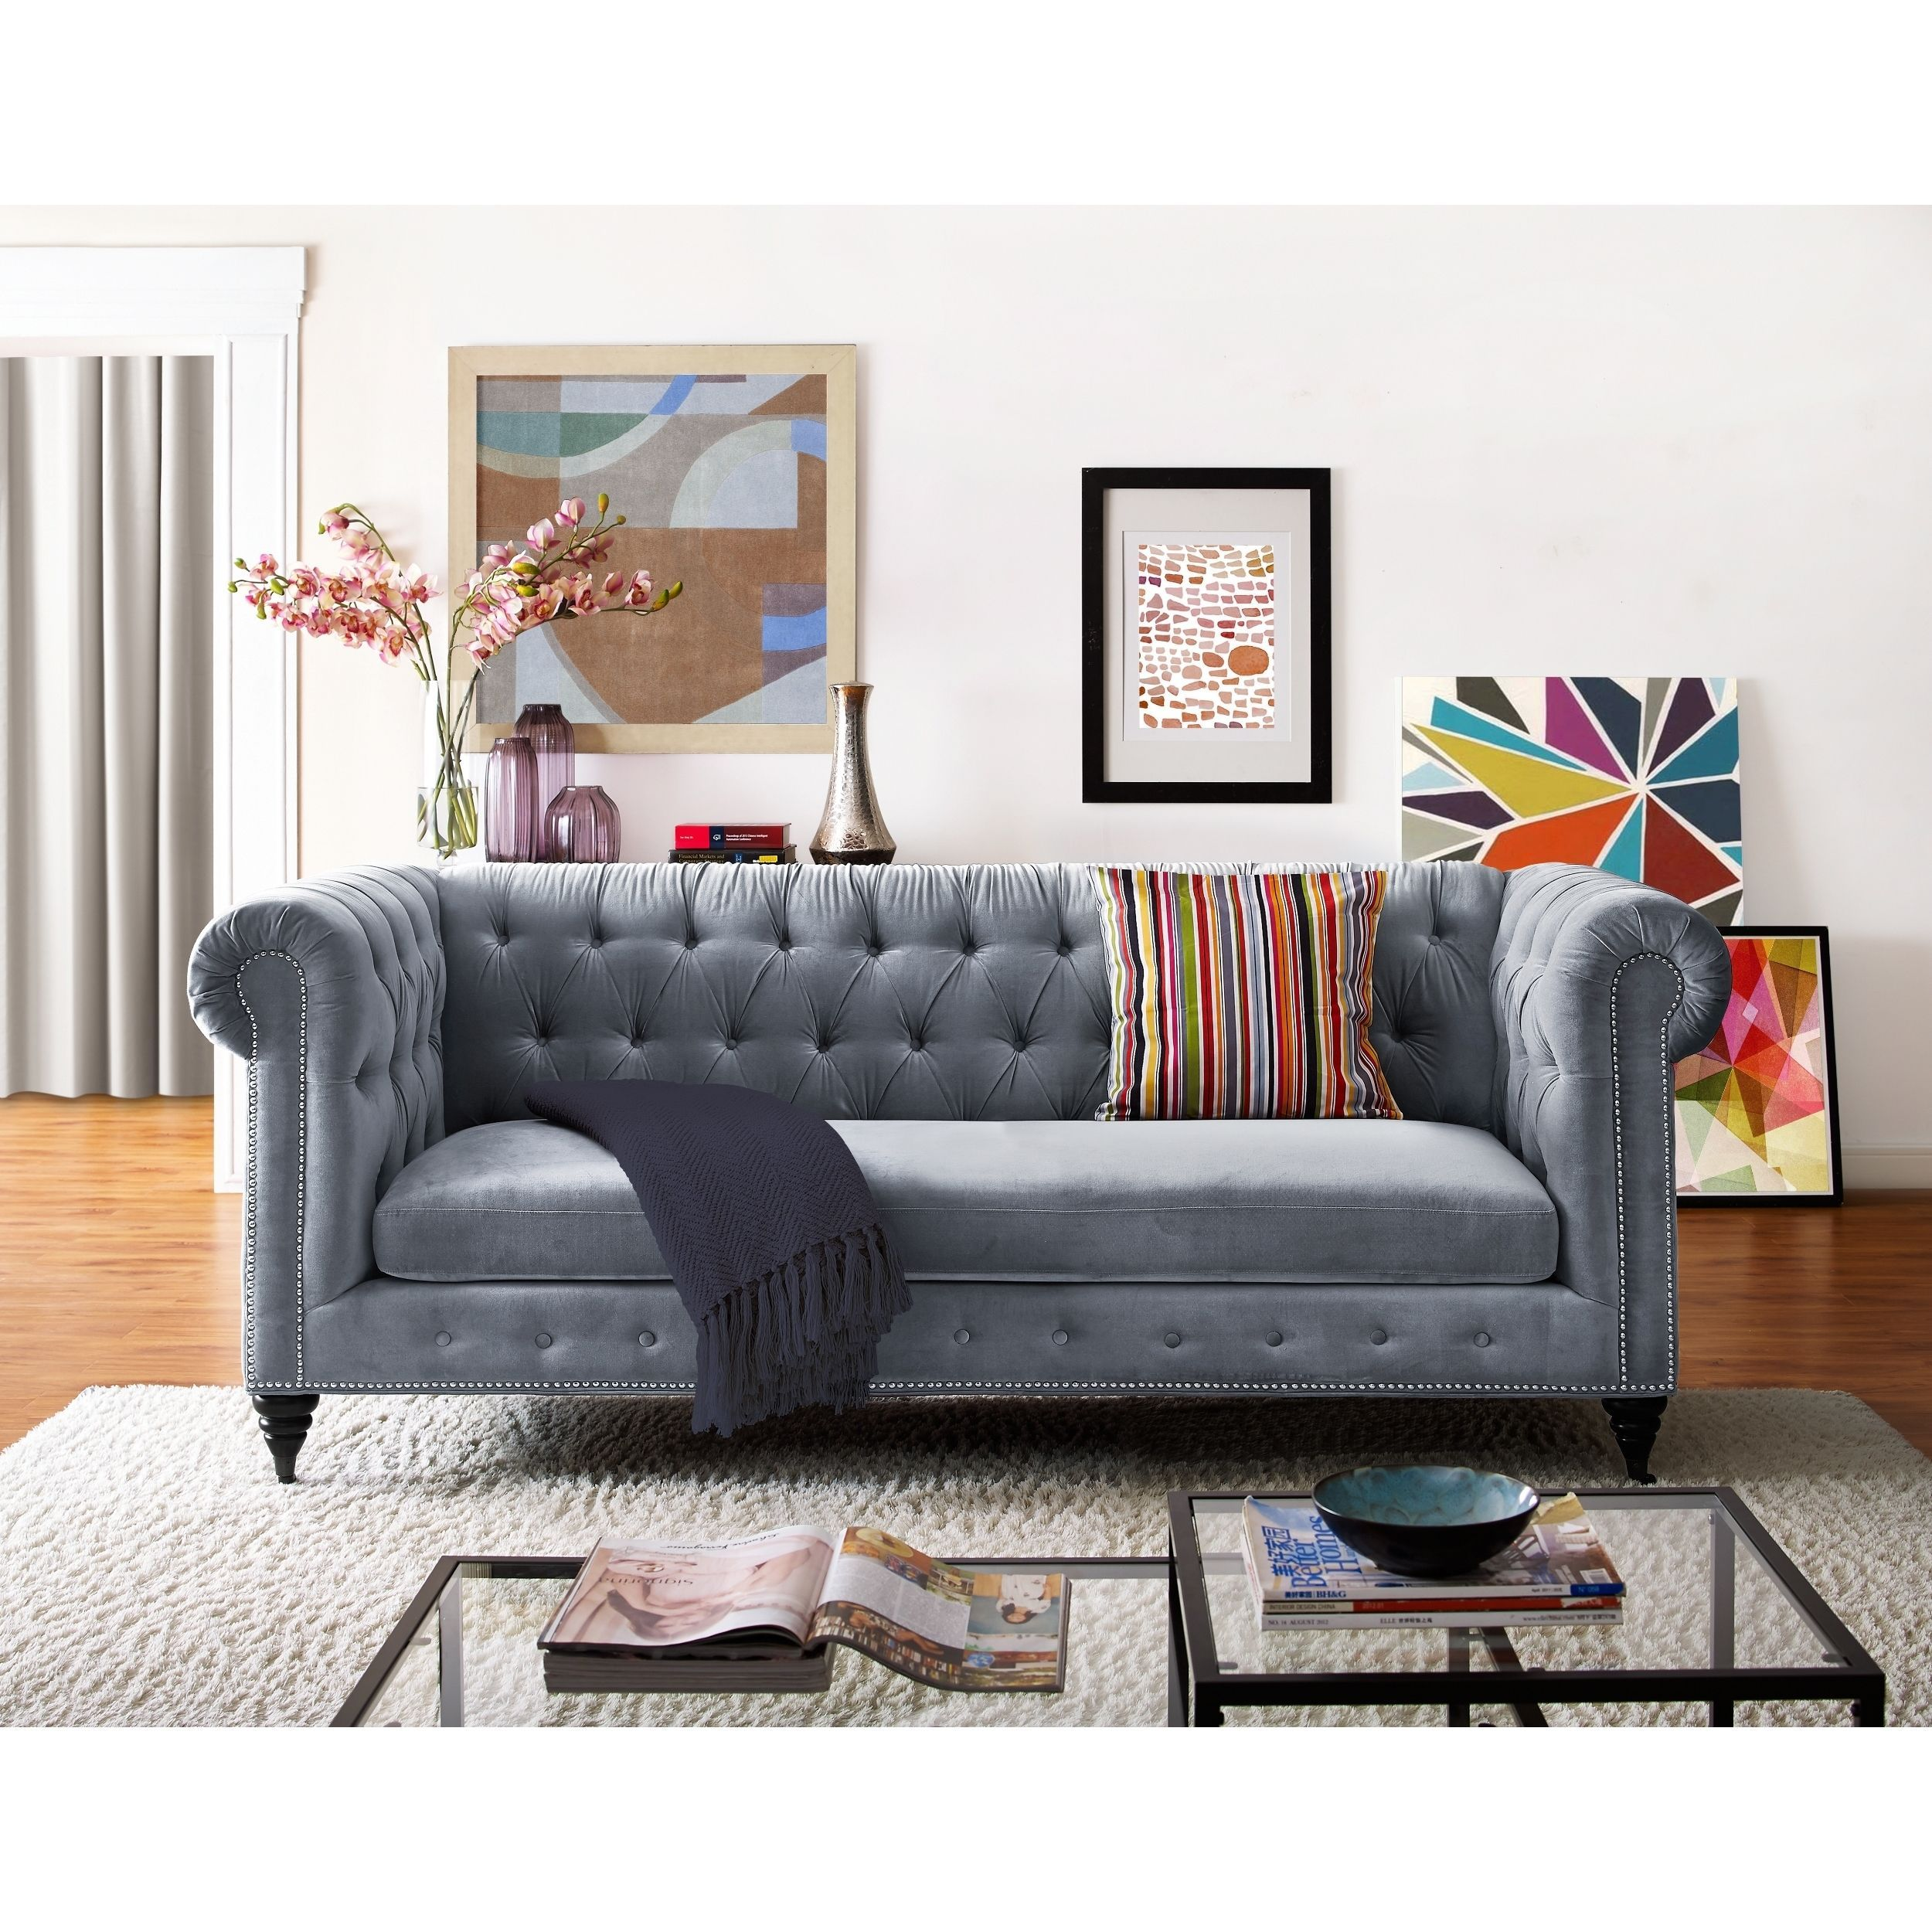 sumptuous design ideas english style sofa. Modeled after its Chesterfield forebearer  our stately Hanny sofa remains faithful to the original with handsome silver nailhead trim and rolled English Bronze arms stunning velvet